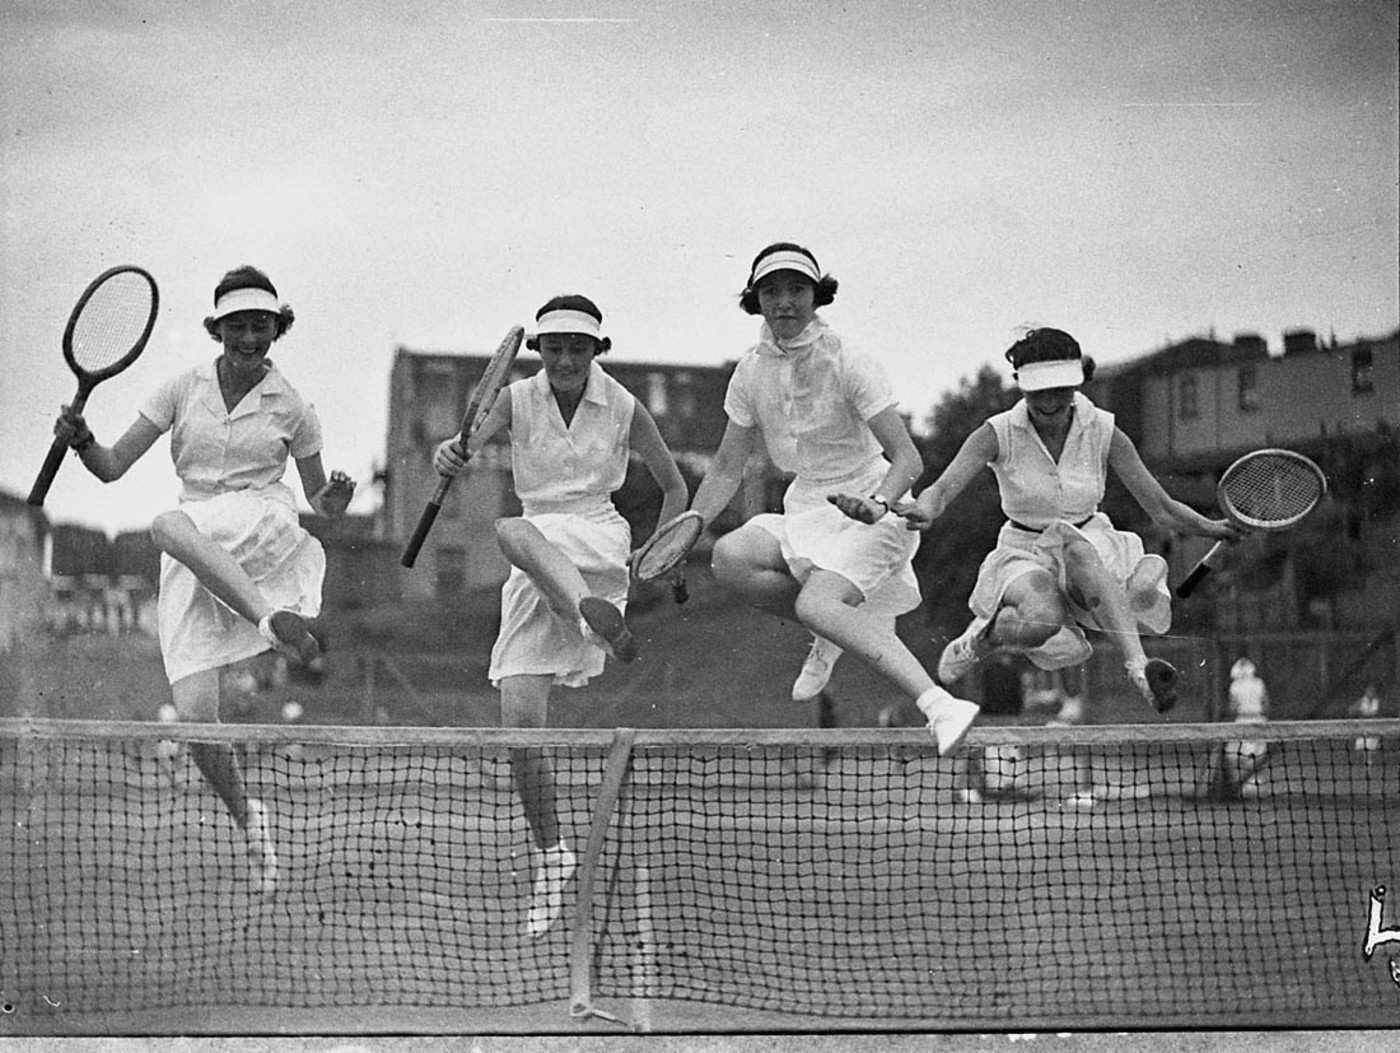 Country Week tennis, 5/1/1937, photograph by Sam Hood